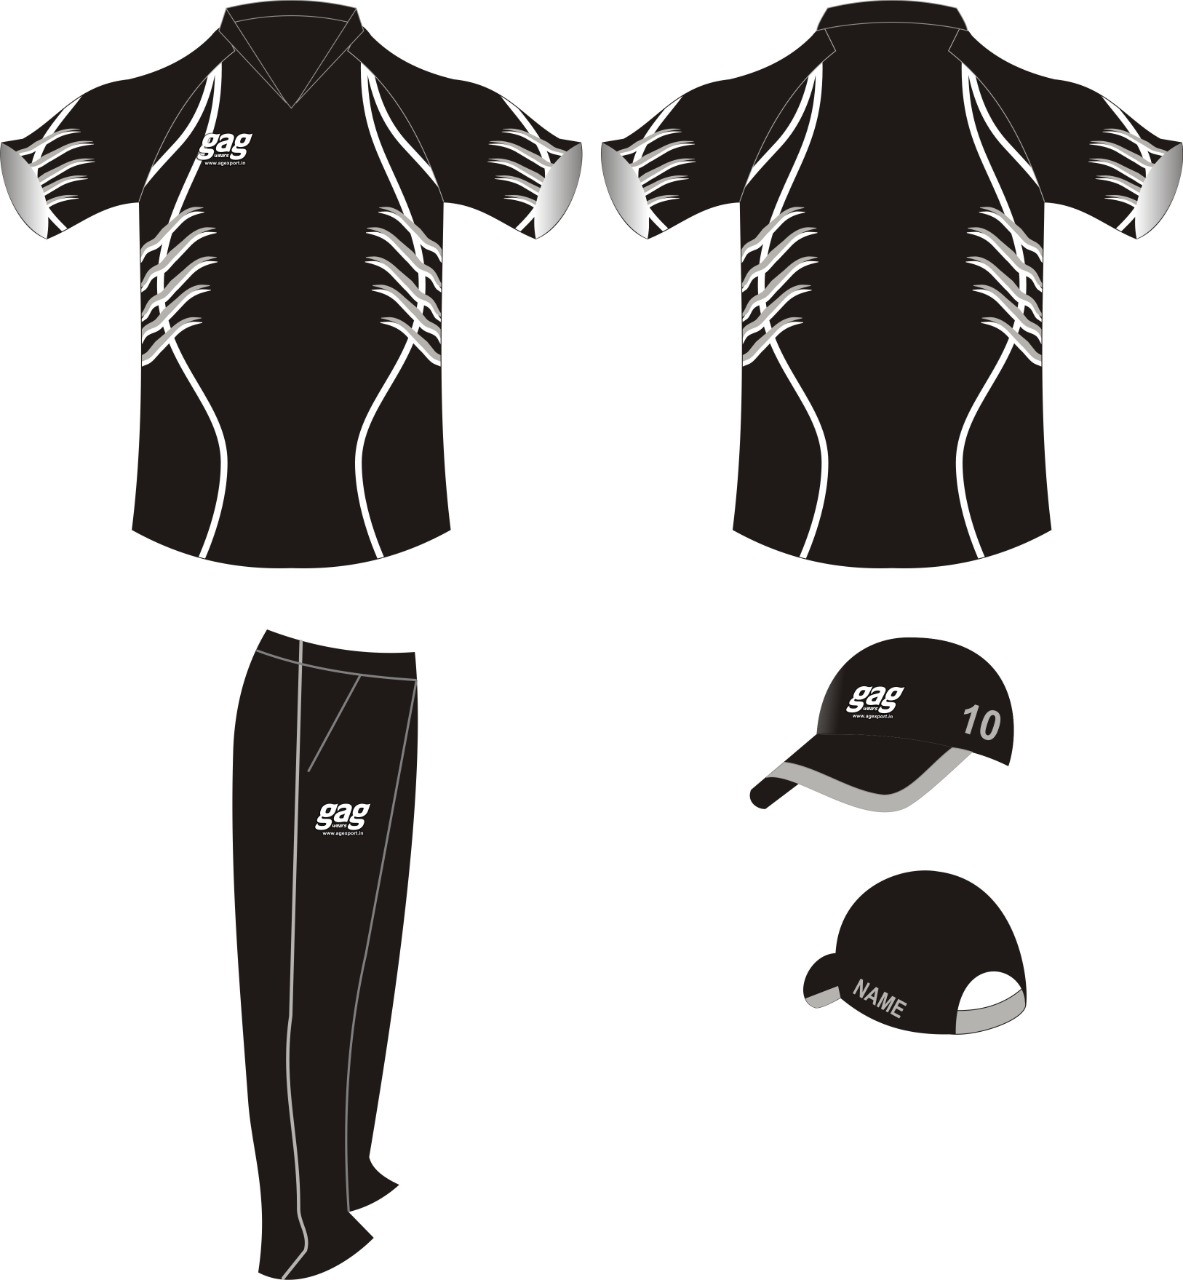 Custom Cricket Jerseys Manufacturers in Jalandhar in Bahrain